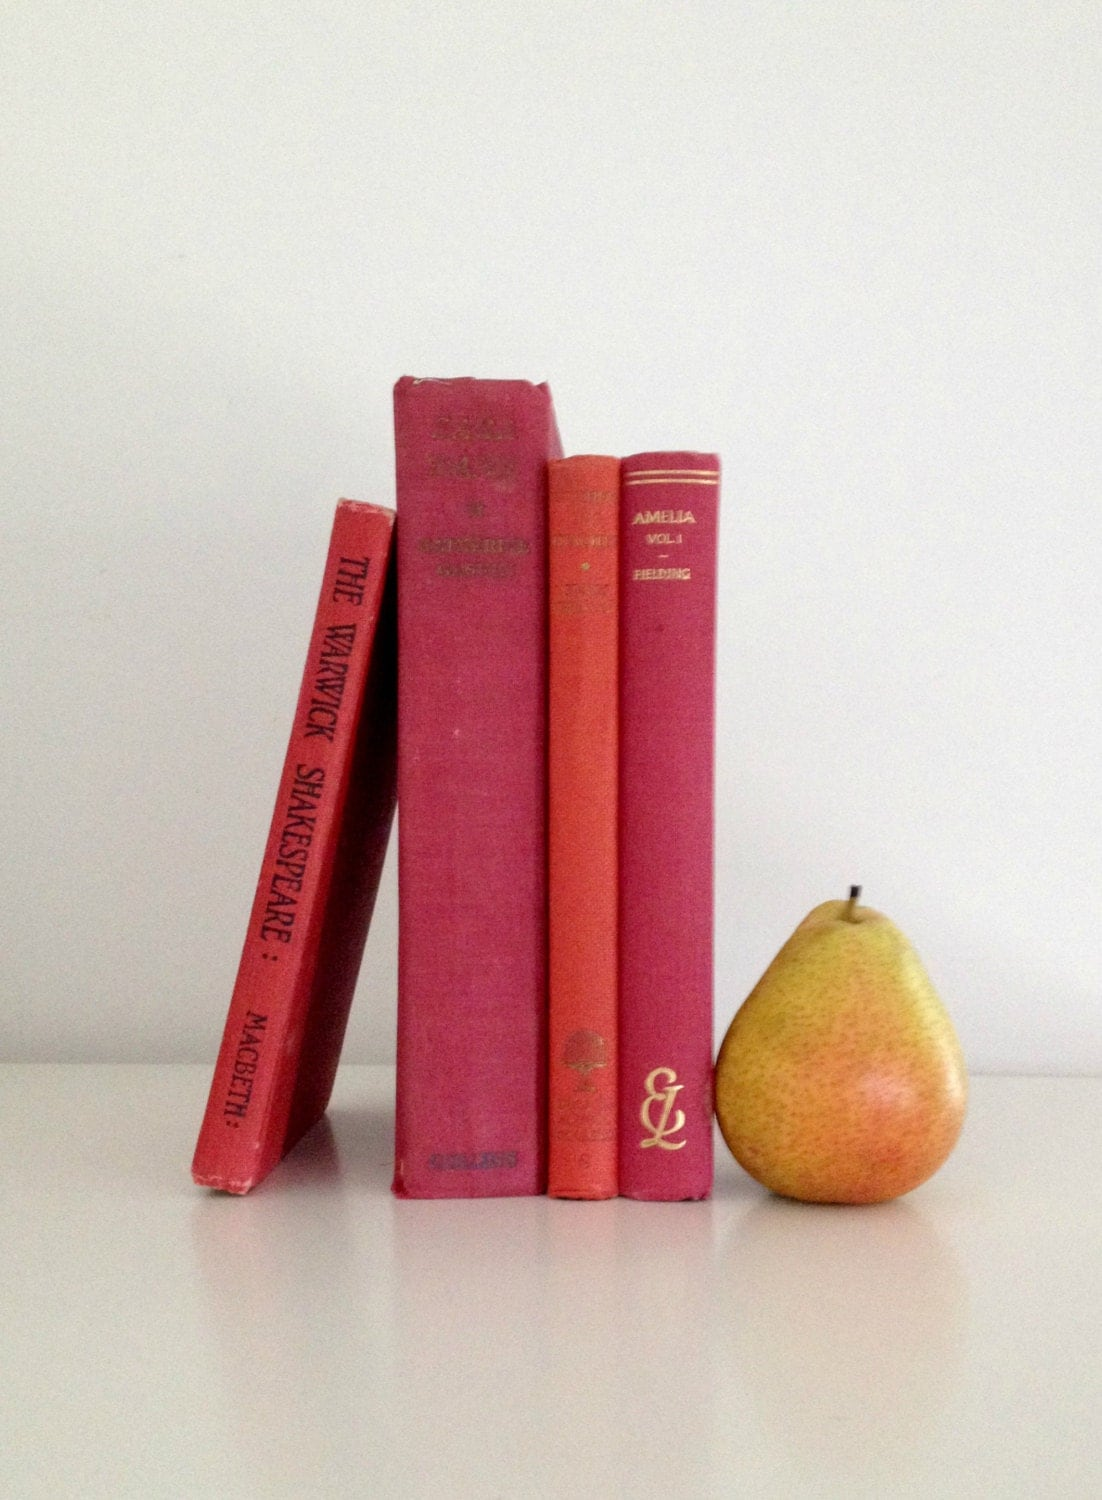 vintage hardcover shades of red book collection - rosyrandom